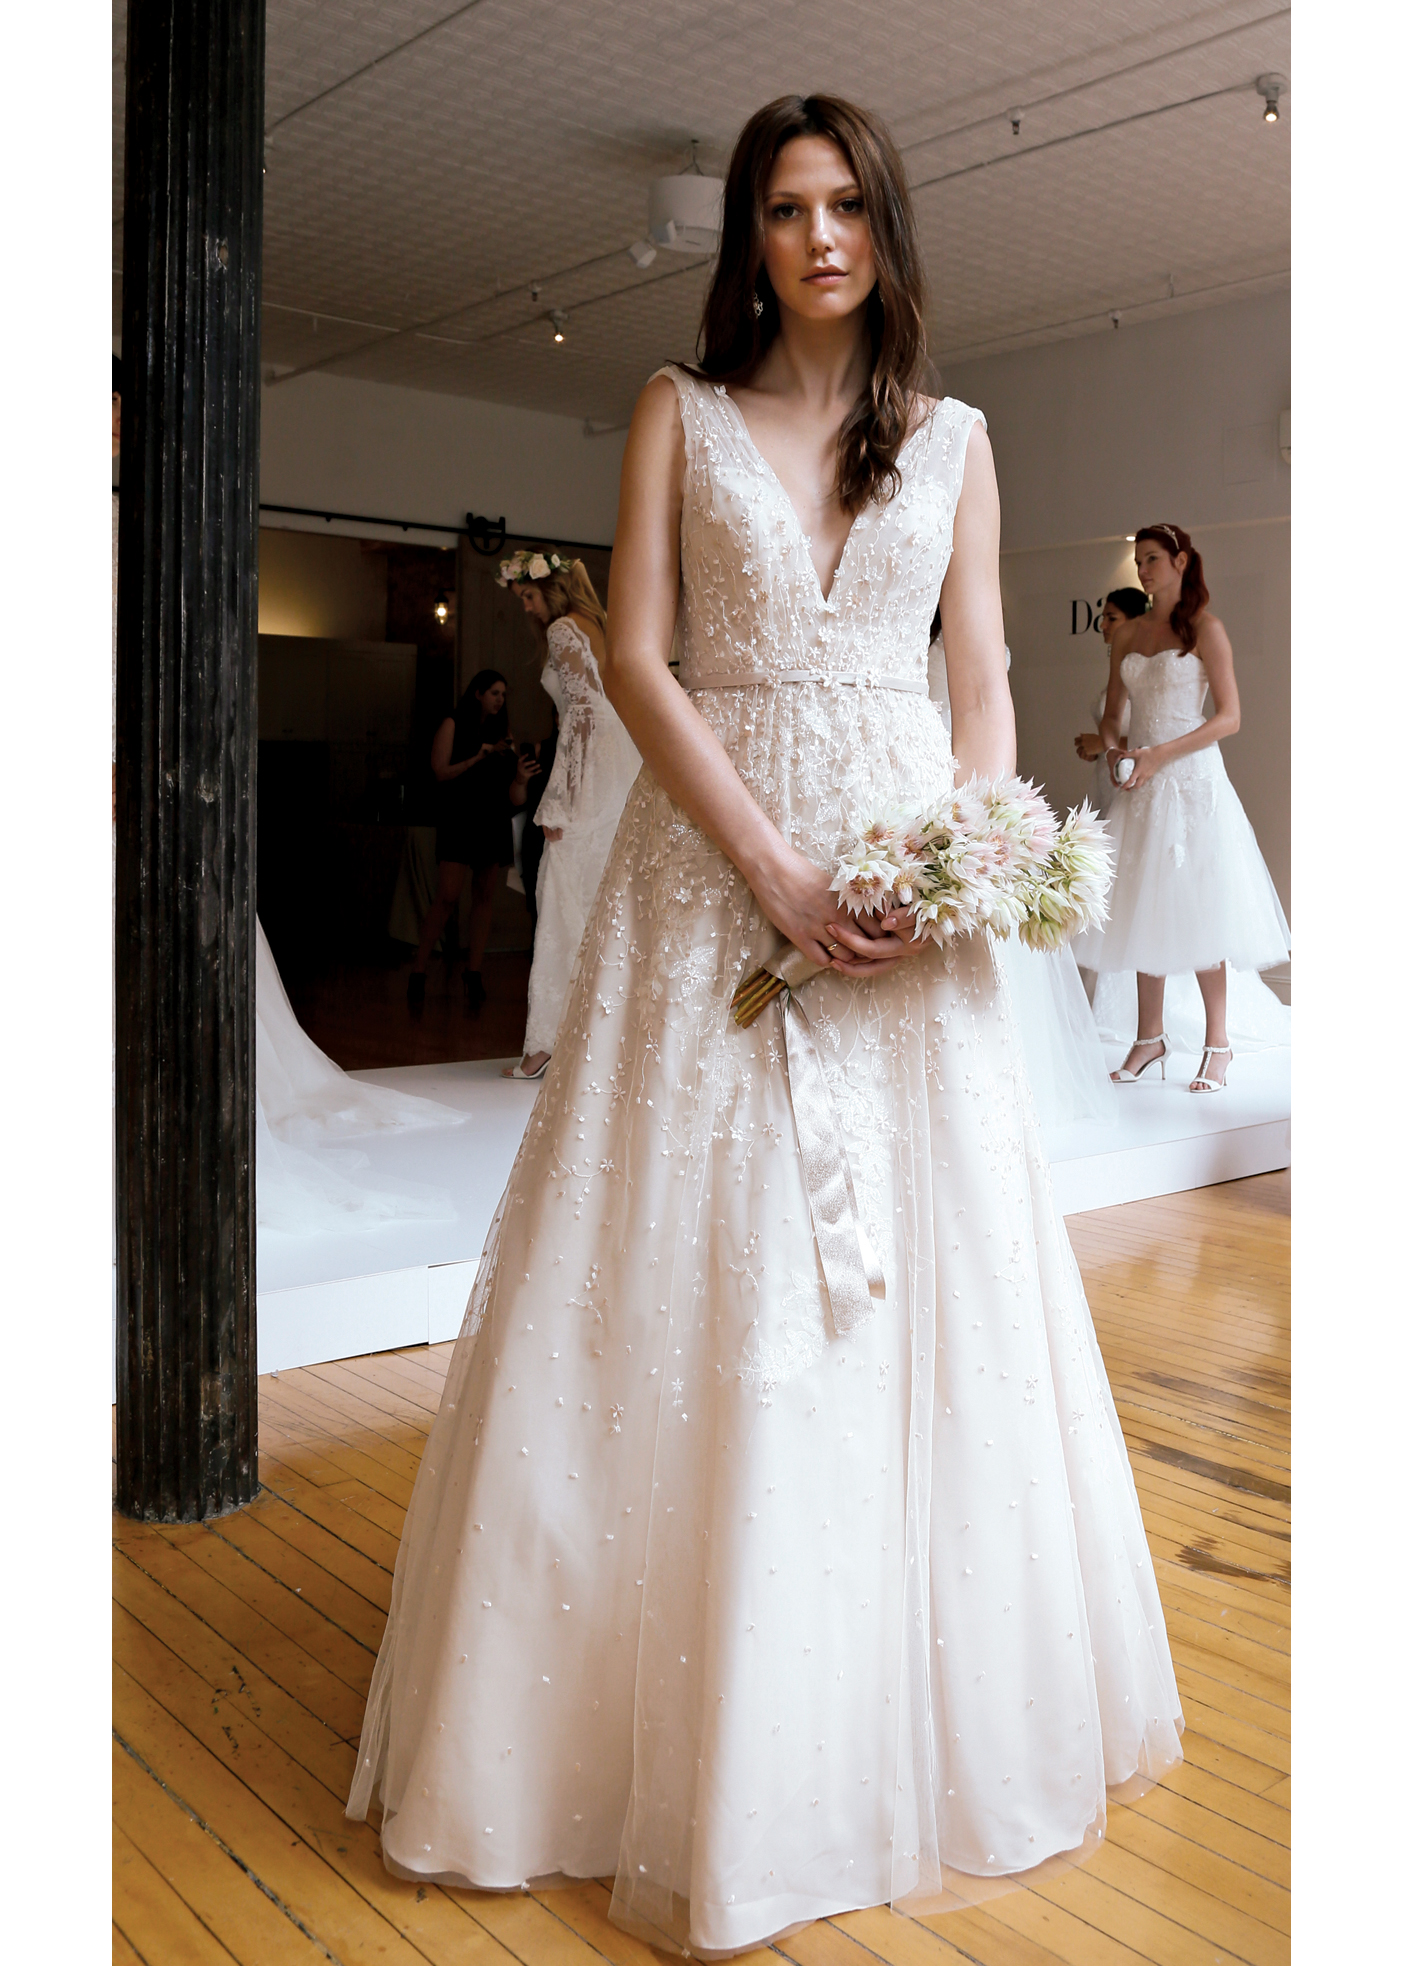 Sparkle in Summer Wearing the Prettiest Floral Dresses Pictures of gowns for wedding sponsors